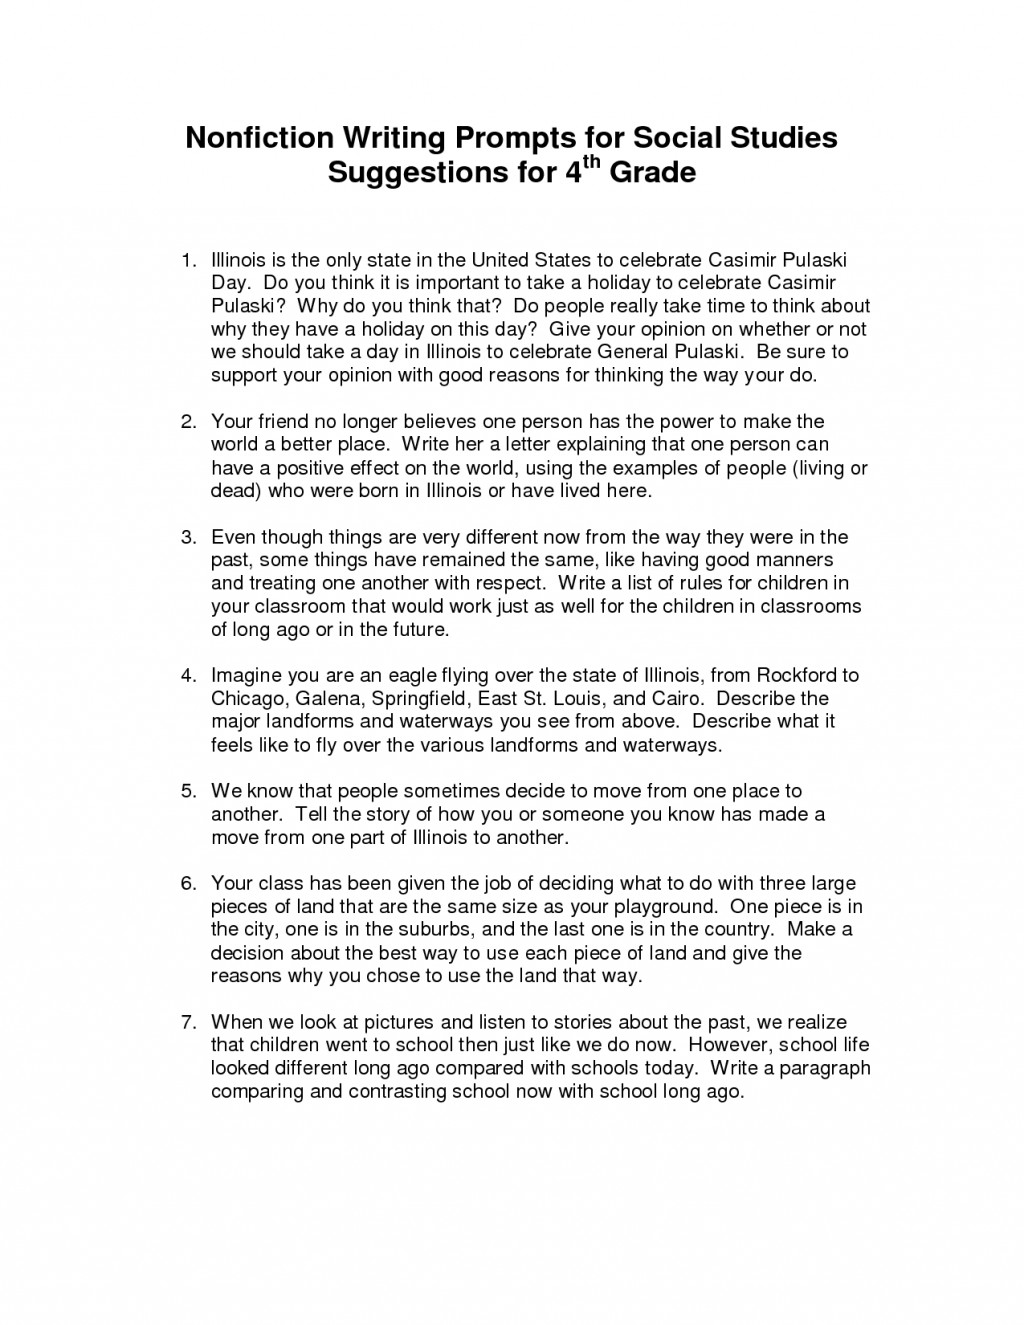 012 Essay Example 4th Grade Writing Prompts Examples 215531 Questions For To Kill Mockingbird Part Impressive A 1 Discussion Chapter 16 14 15 Large